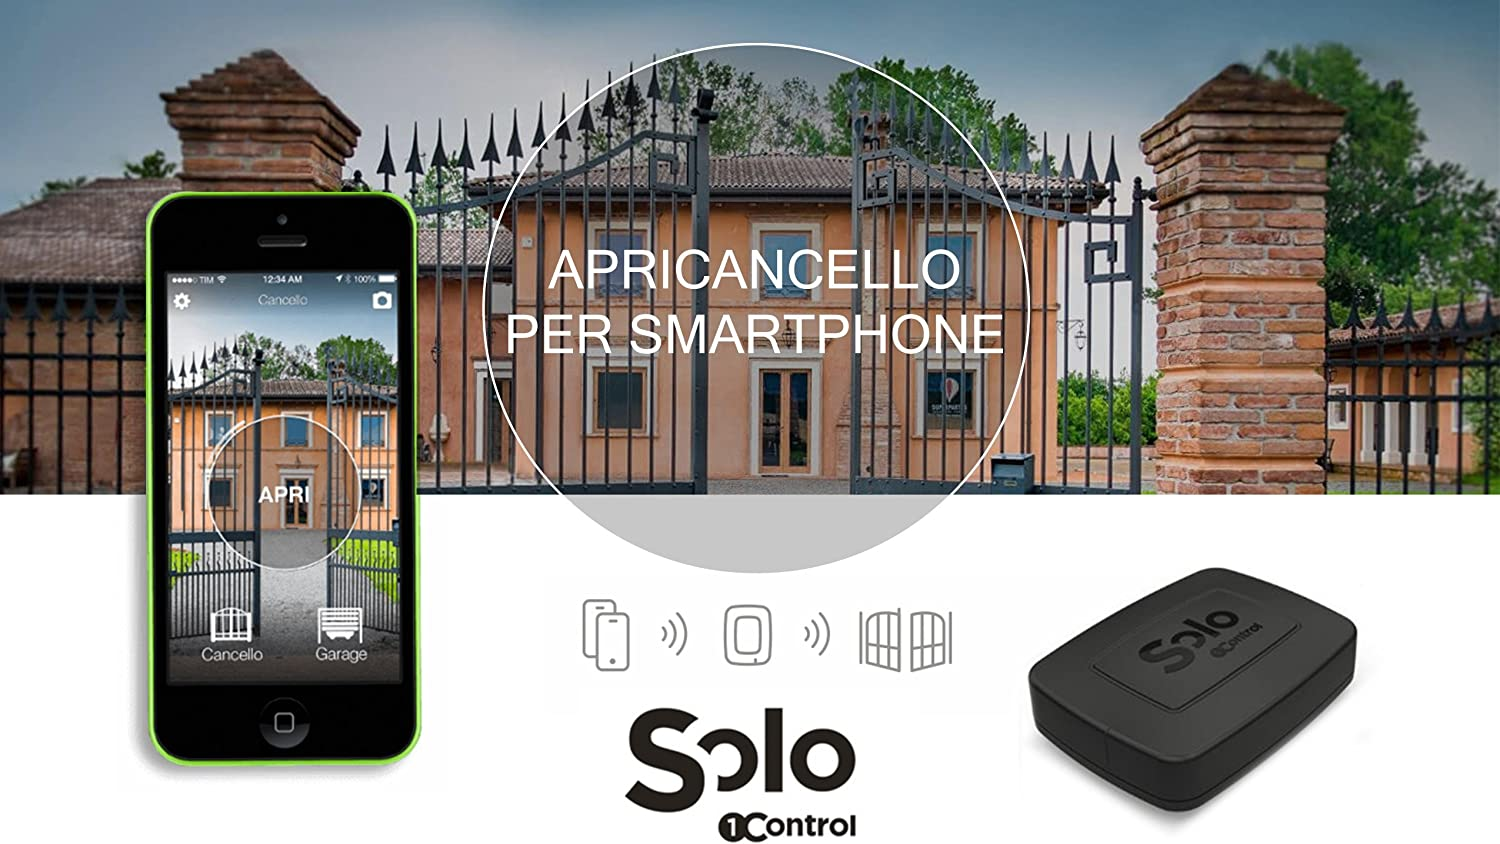 Abrepuertas Bluetooth 4.0 para smartphone iPhone y Android 1Control SOLO SOLO KIT